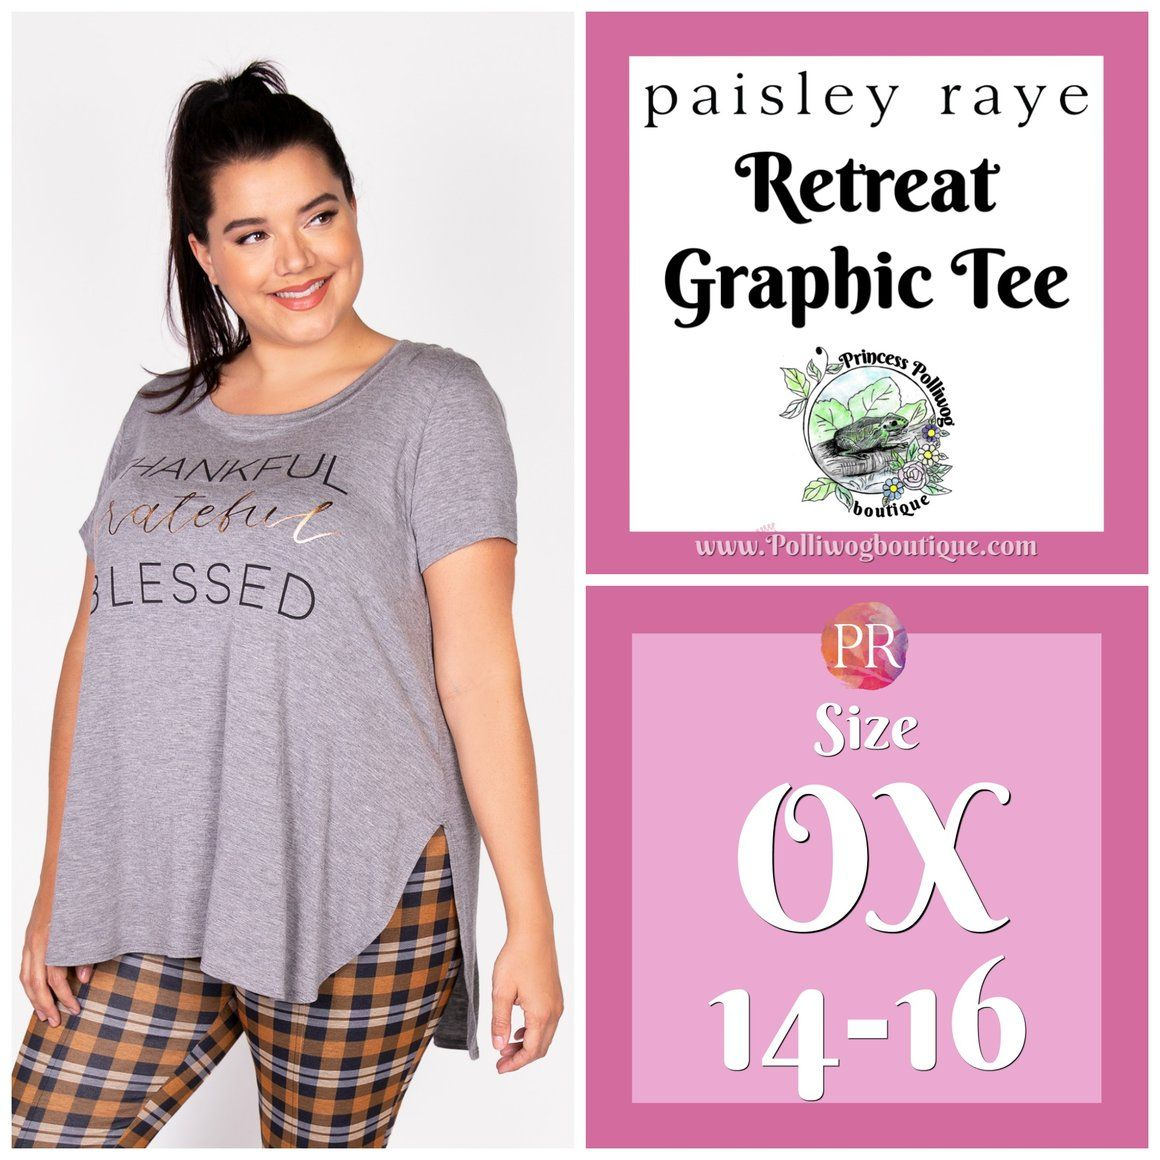 c54ade903 Paisley Raye Retreat Graphic Tee- 0X (Thankful,Grateful,Blessed) by  Princess Polliwog Boutique, shop now at www.polliwogboutique.com